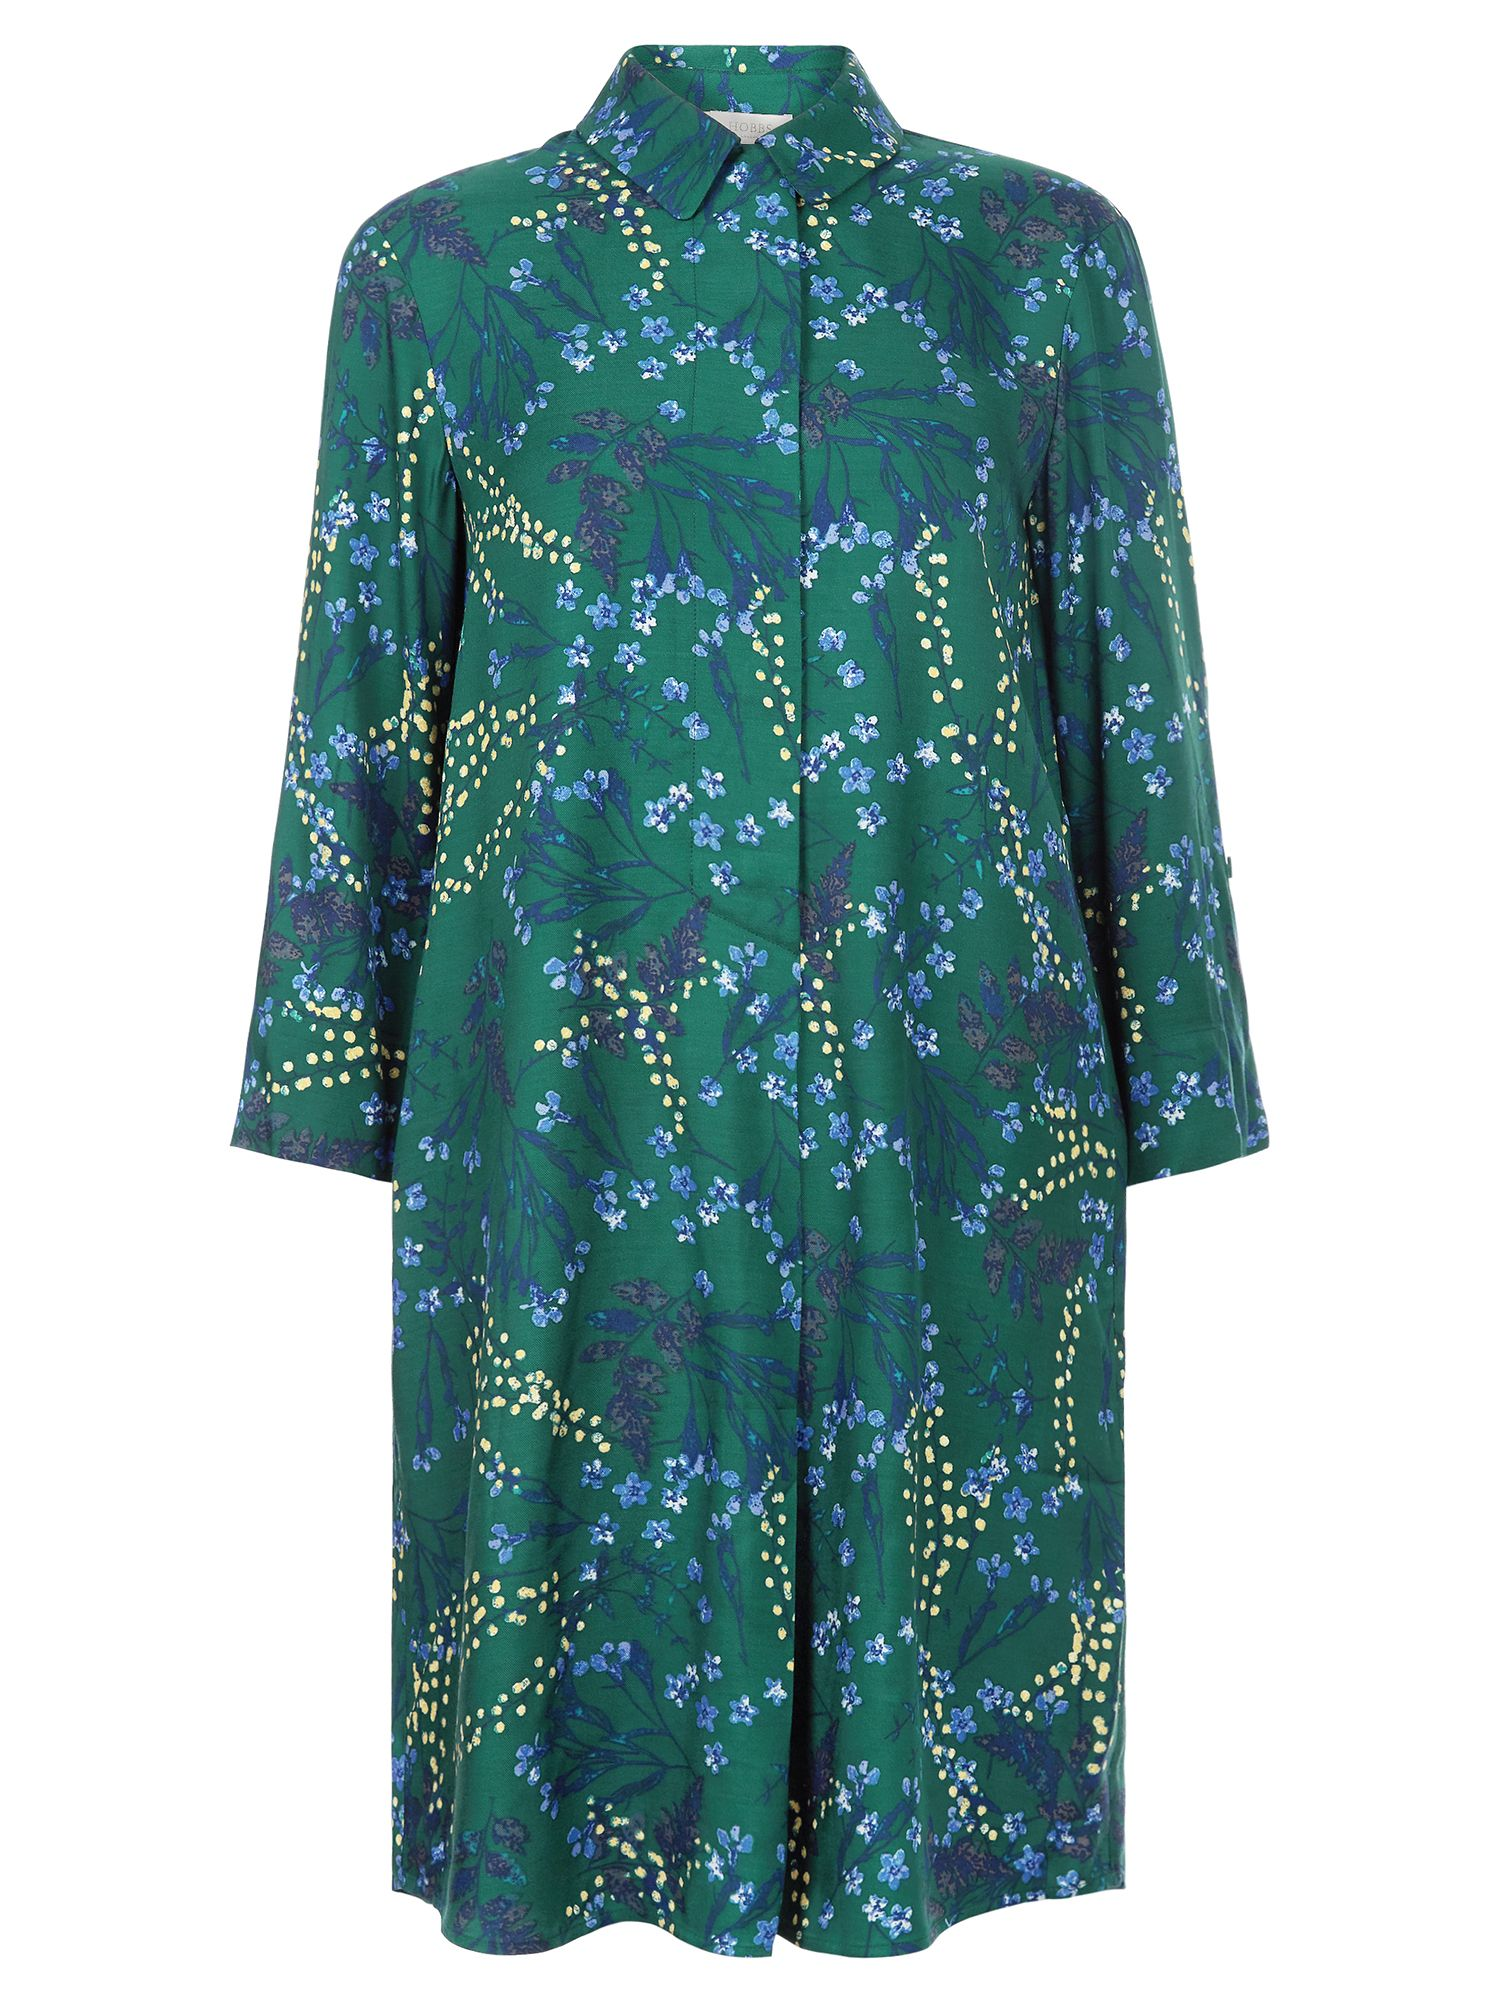 Hobbs Marci Dress, Green